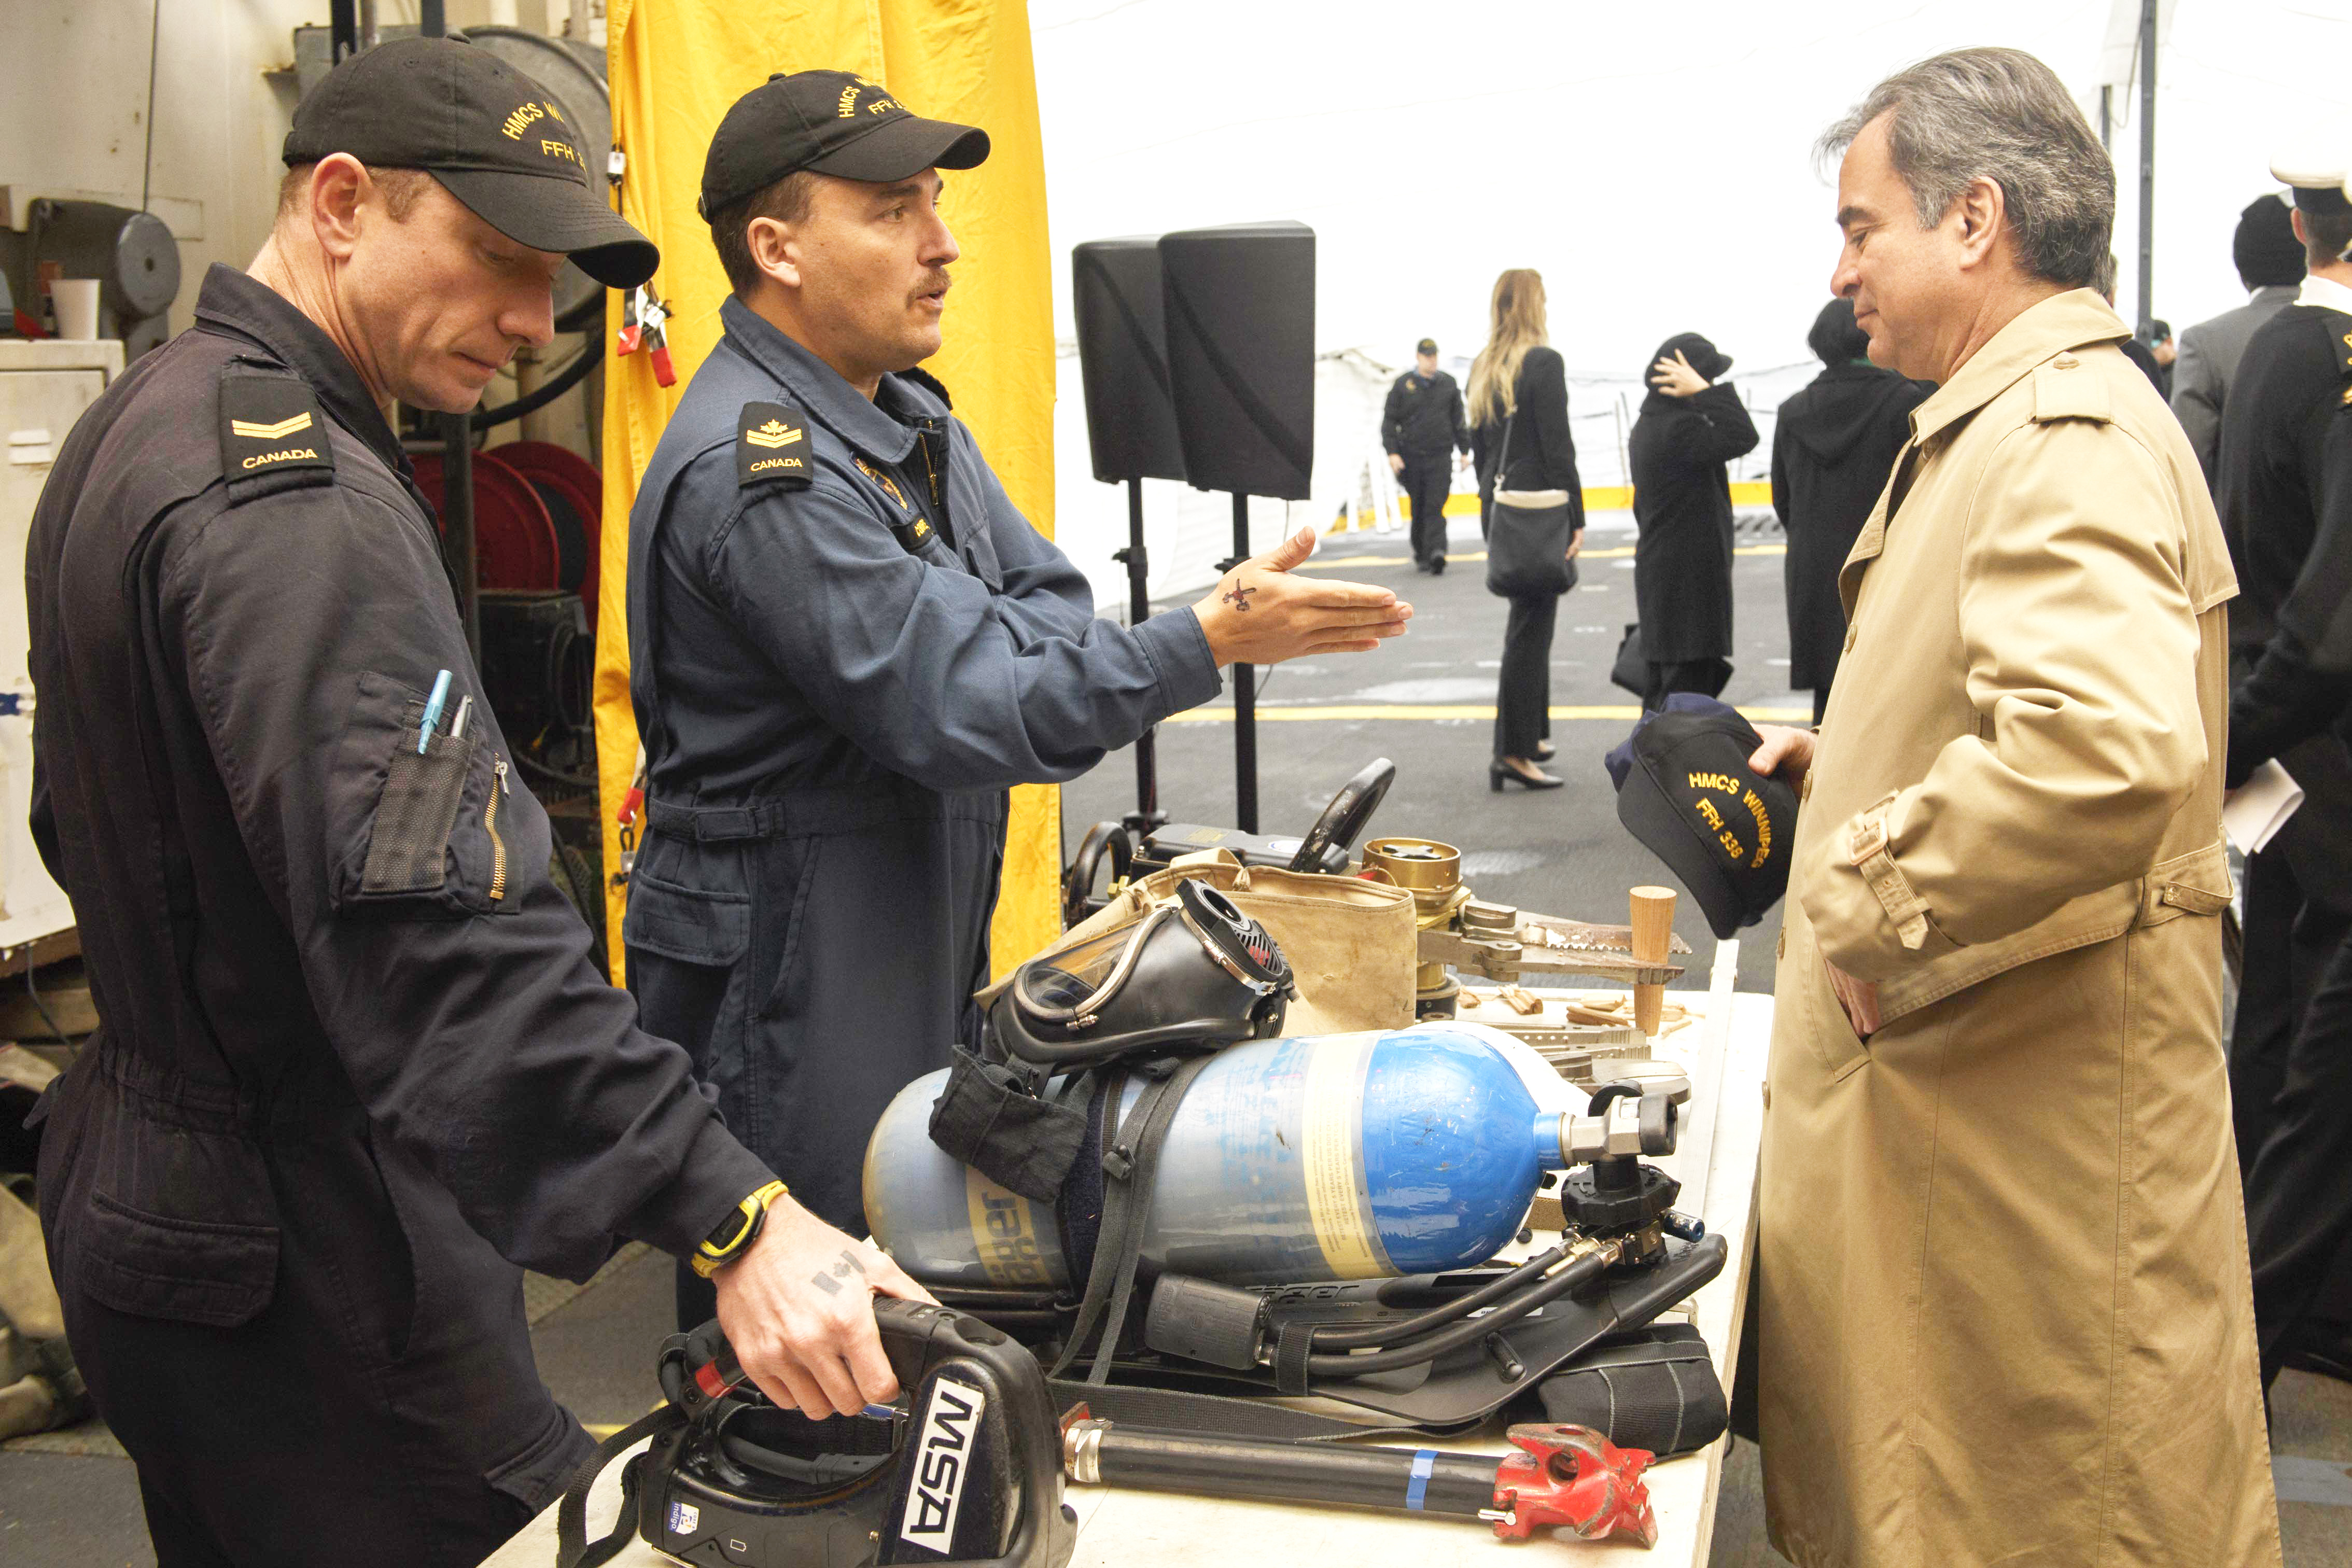 Marine Technicians Leading Seaman Nathan Gillis and Master Seaman Martin Couture describe the firefighting equipment used onboard HMCS Winnipeg to a delegate attending the United Nations Peacekeeping Ministers' Conference during a tour of the ship.